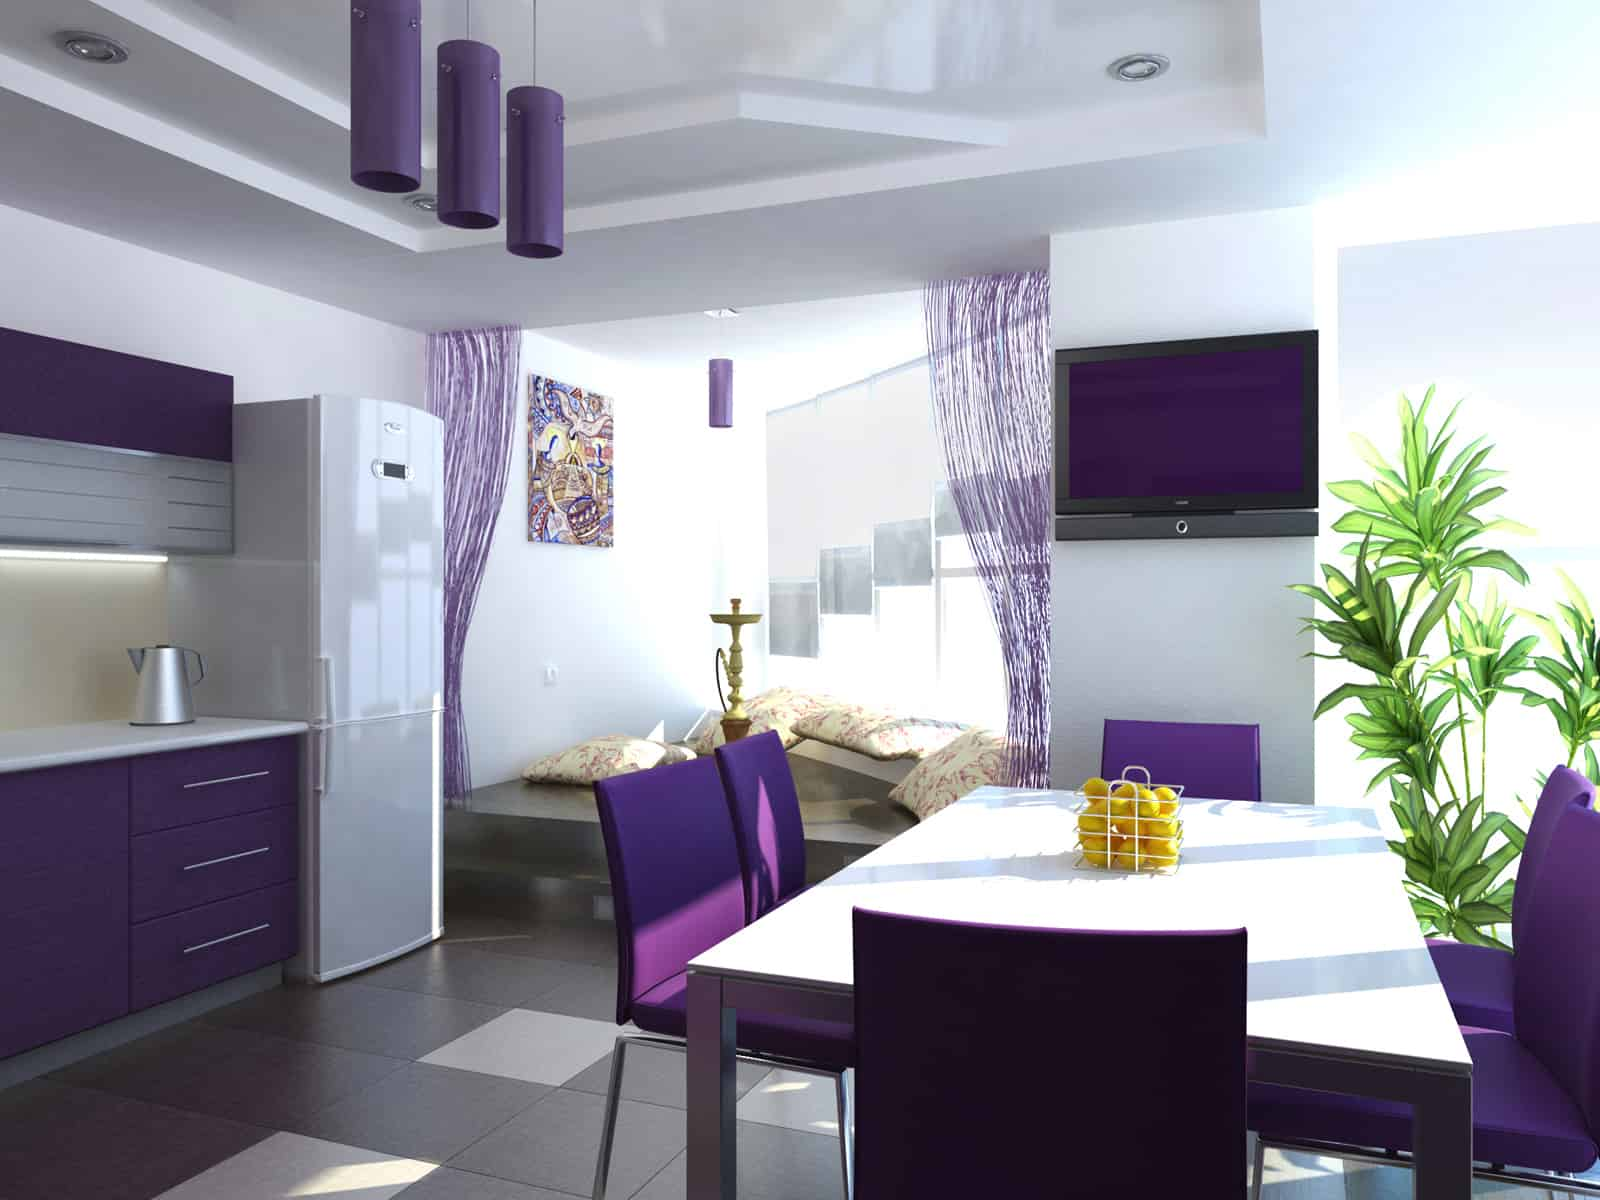 Interior design trends 2017 purple kitchen for Interior motives accents and designs